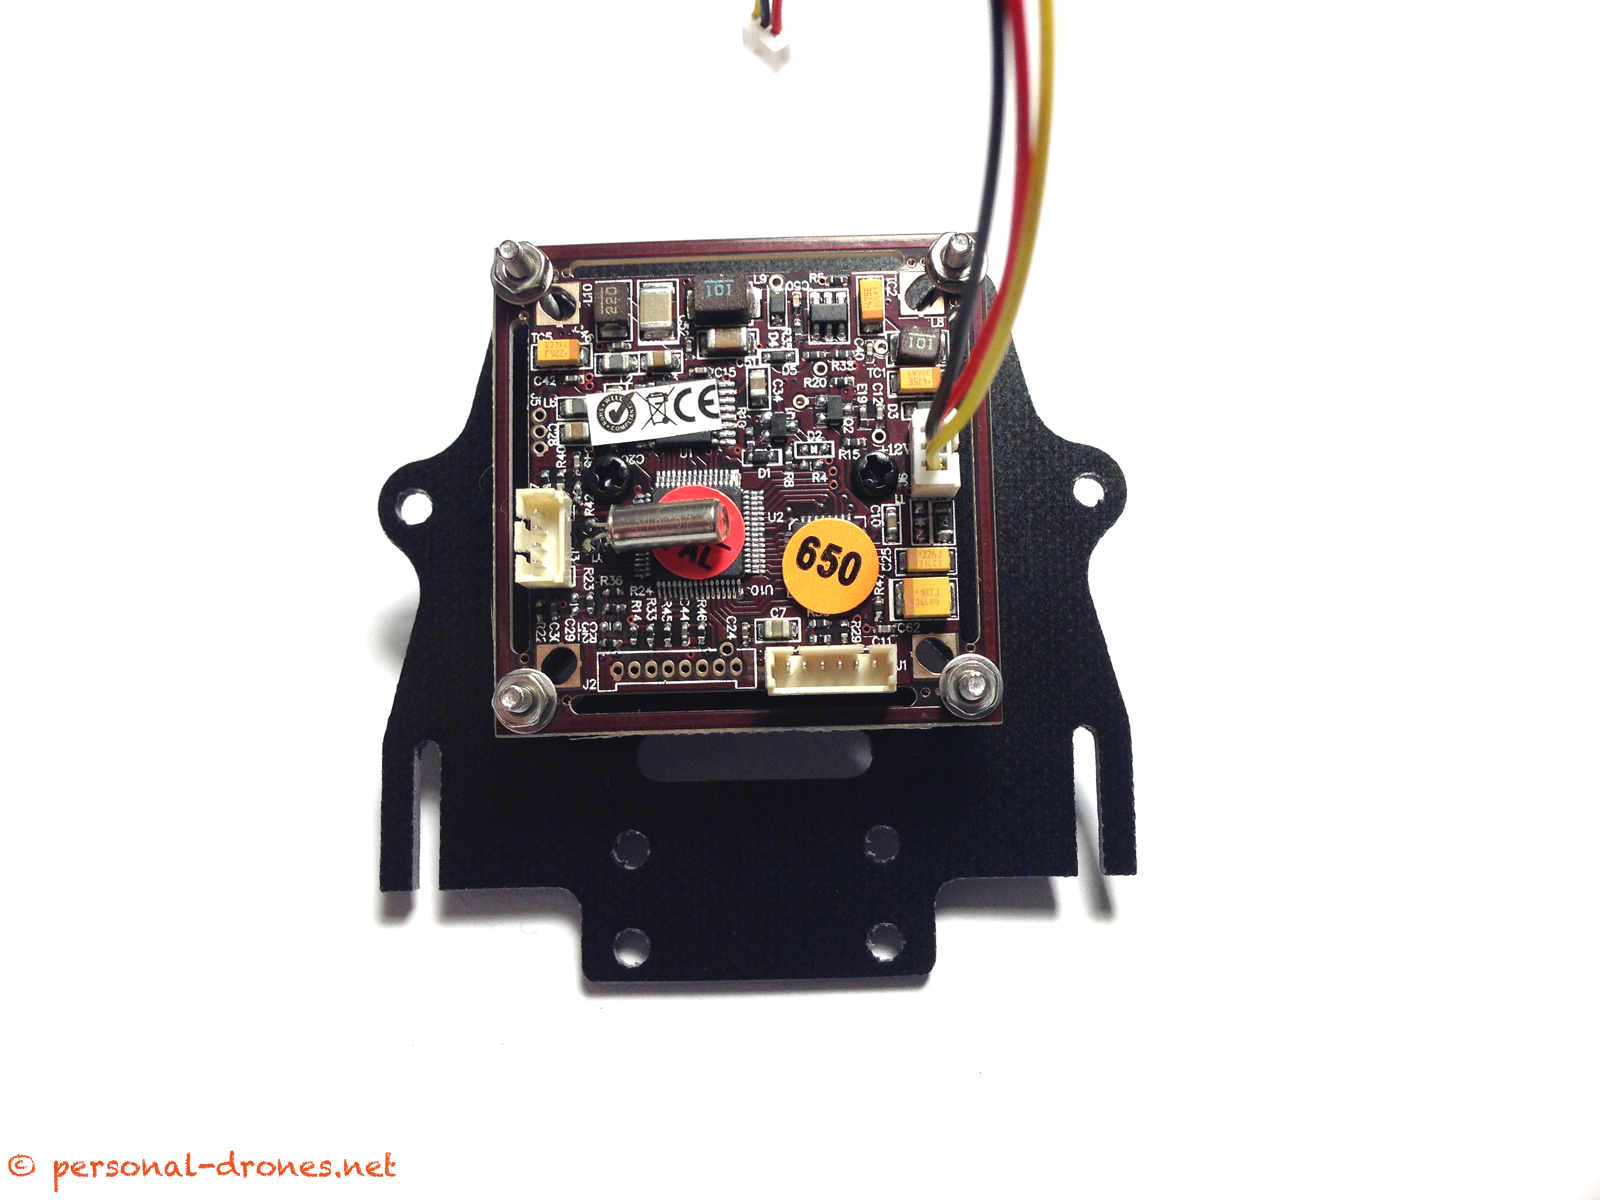 CCD camera on FlyXcopter front mount